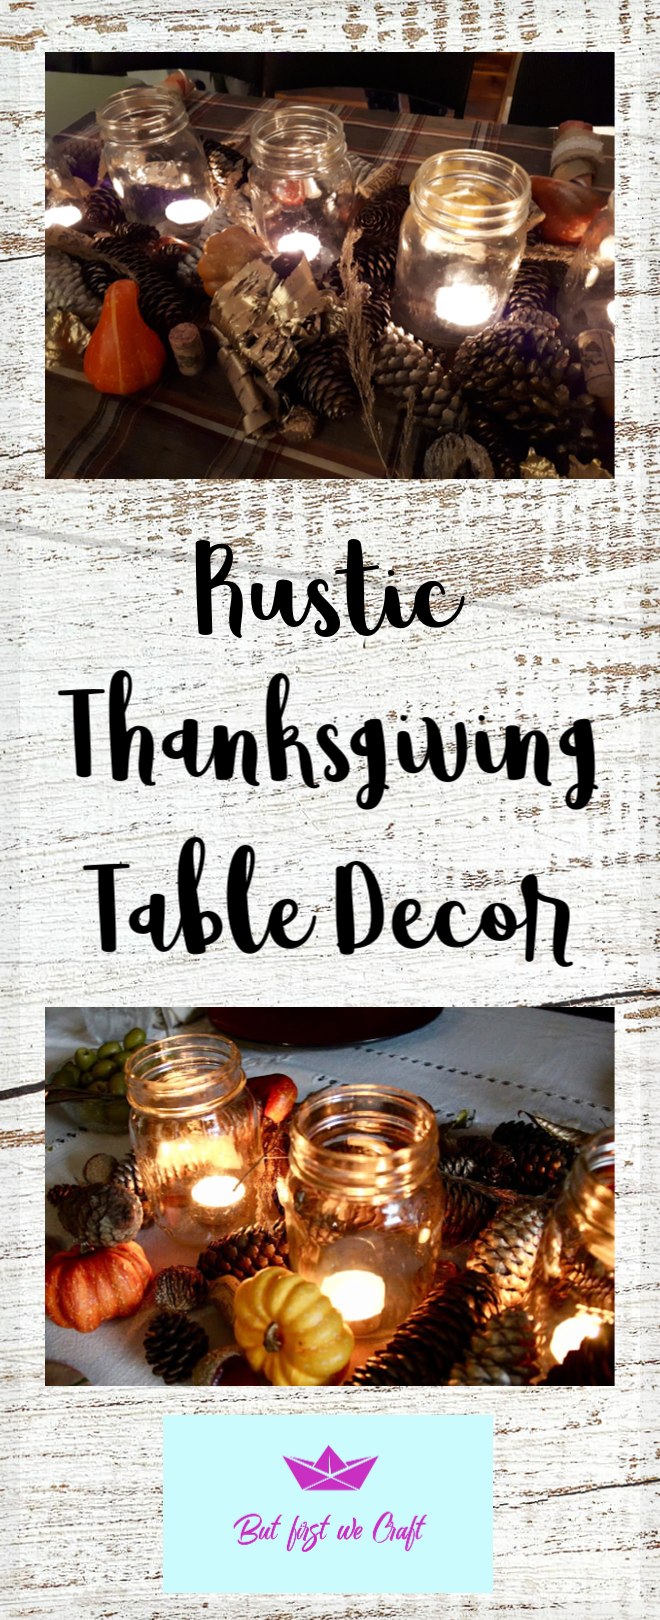 Pinterest Thanksgiving Table Display Final